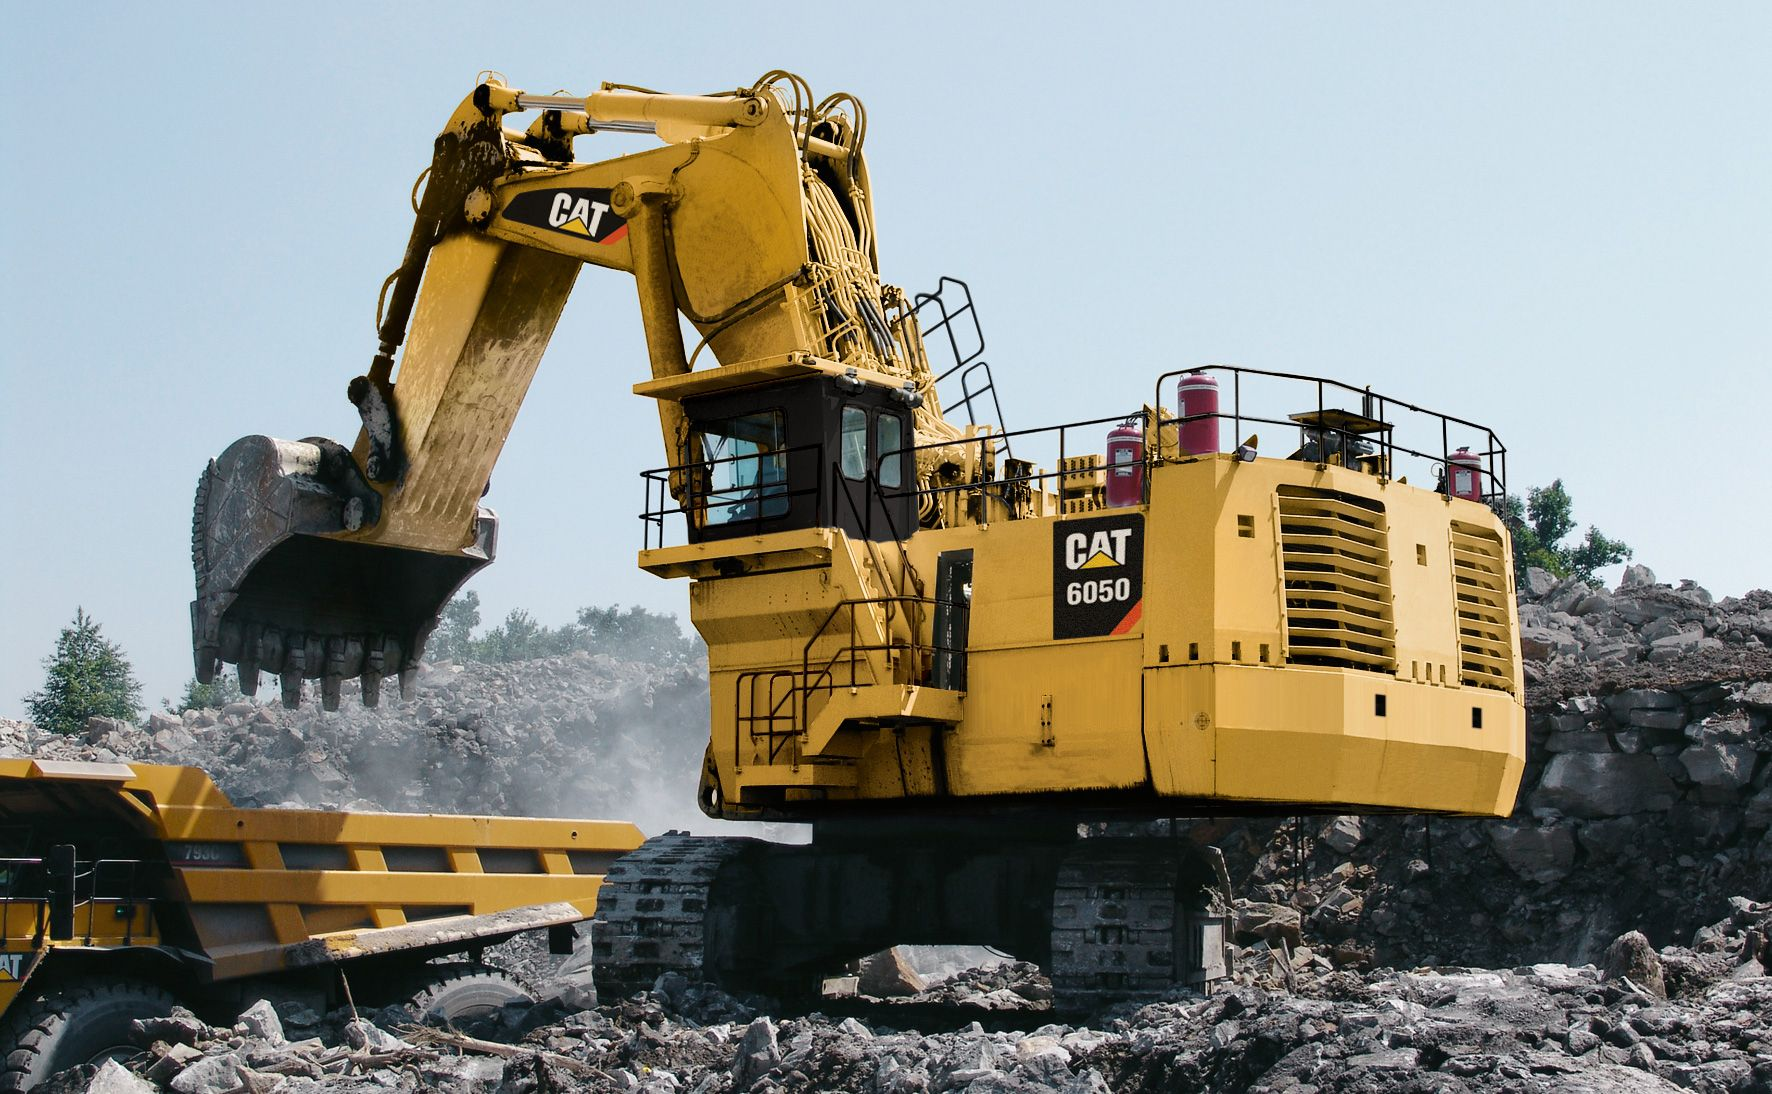 These excavators are designed to handle the most rugged